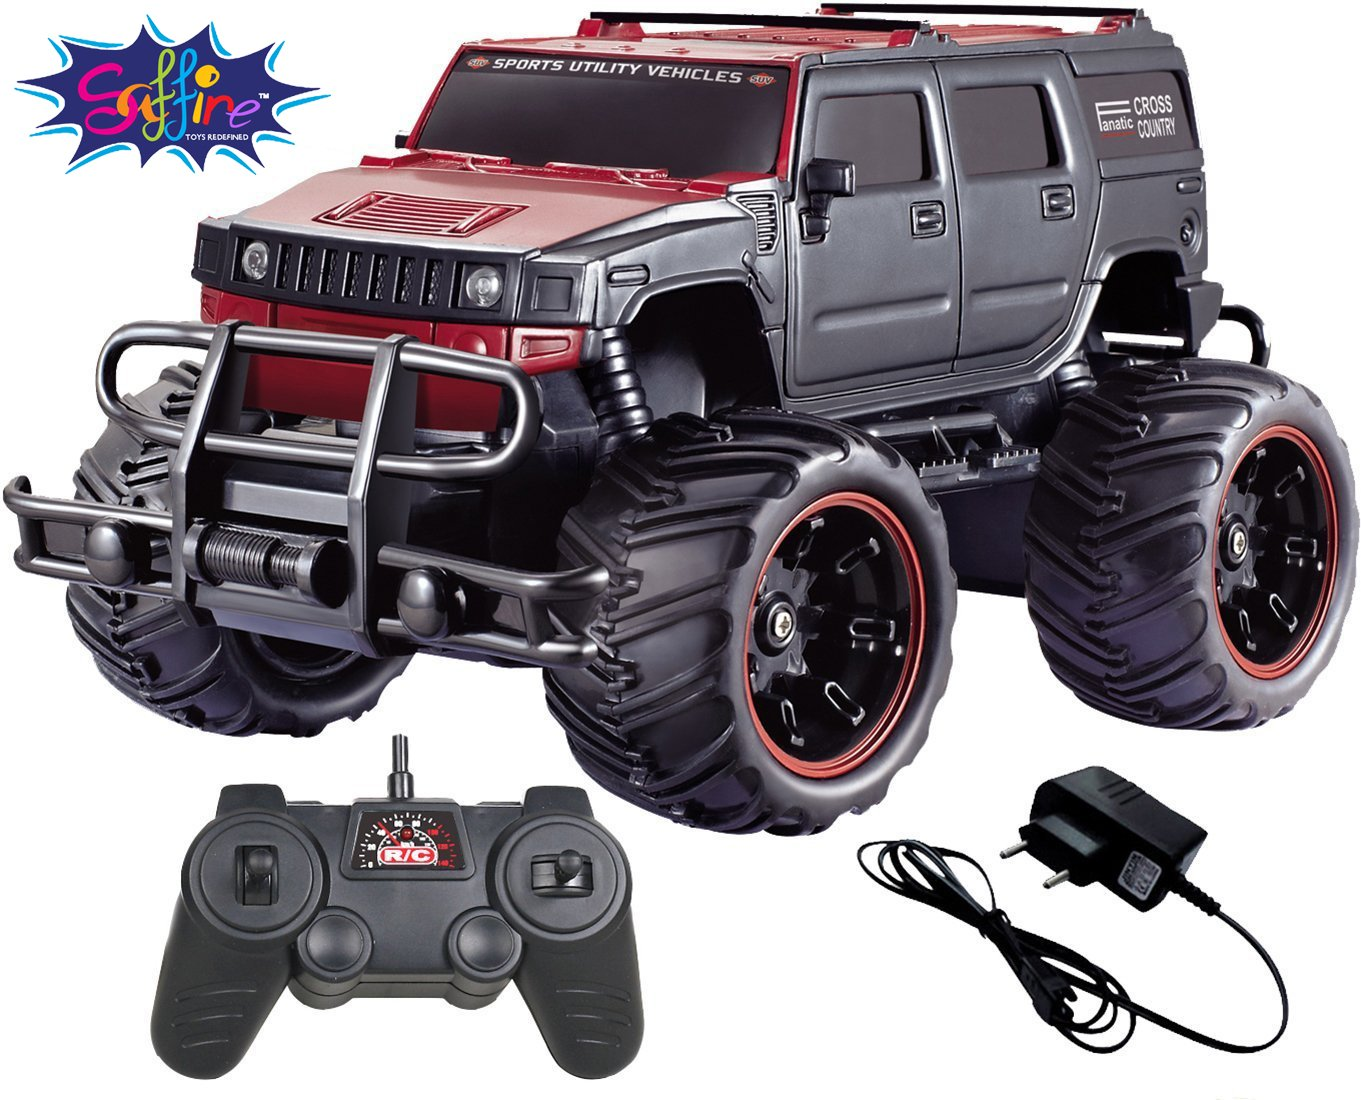 25% off Or More On Best Selling Toys By Amazon | Saffire Off-Road 1:20 Hummer Monster Racing Car @ Rs.799